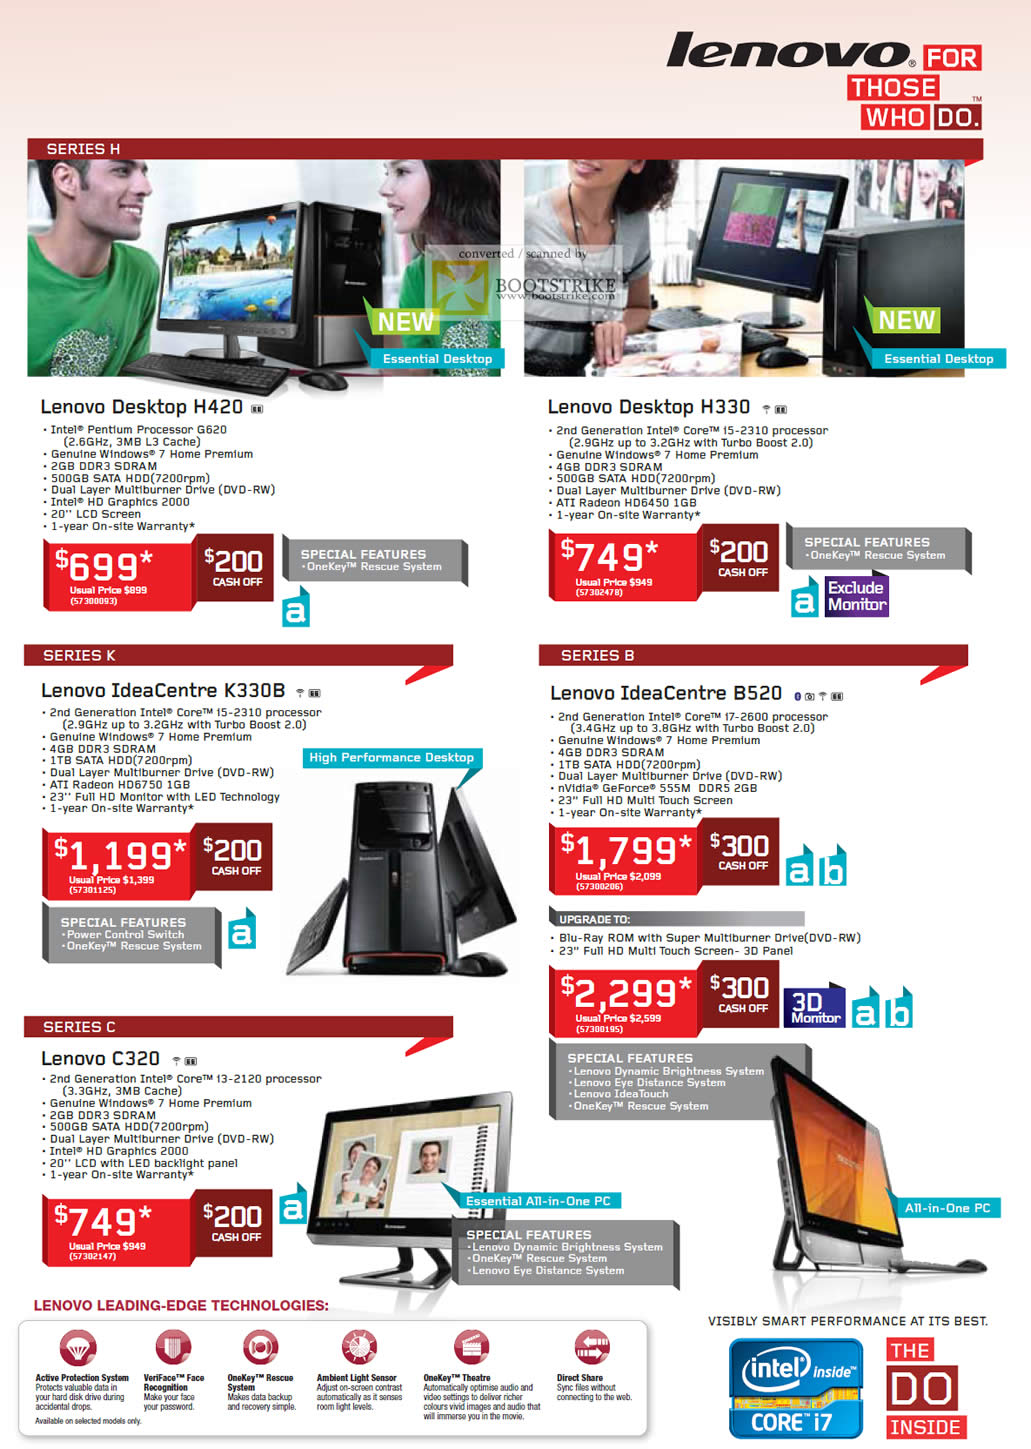 SITEX 2011 price list image brochure of Lenovo Desktop PC H420, H330, IdeaCentre K330B, B520, C320